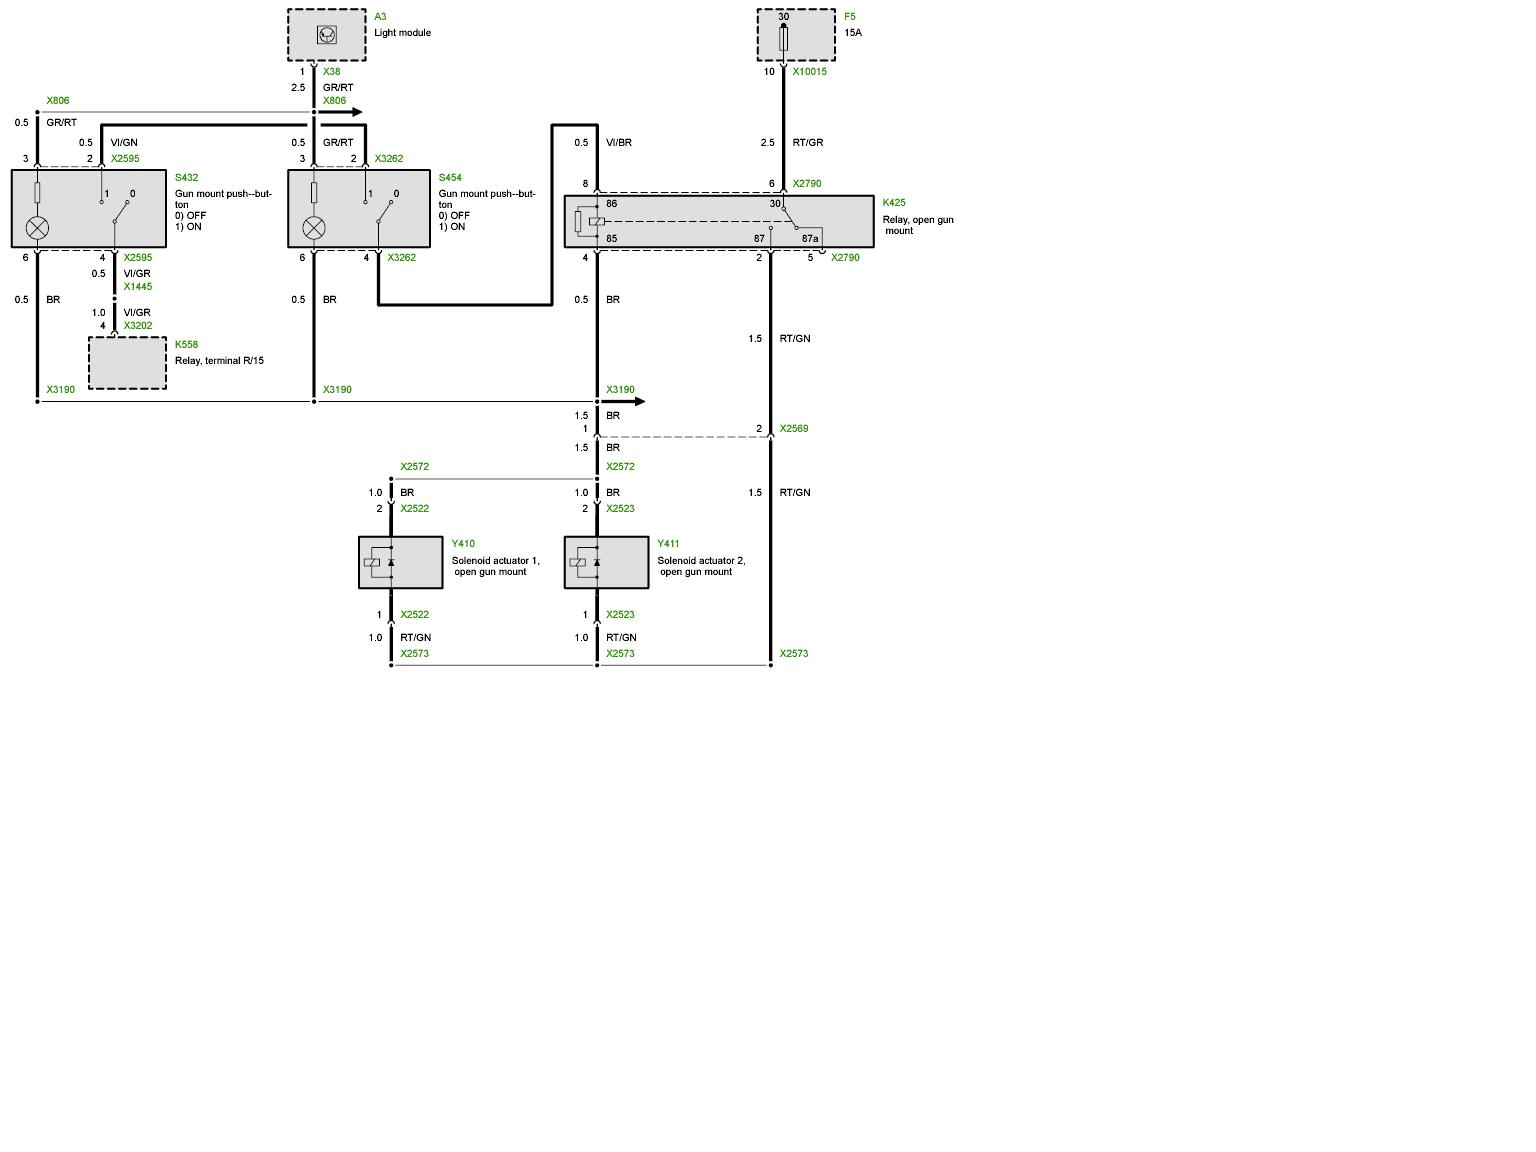 Ista D And Icom Emulator Page 4 Bmw M5 Forum M6 Forums Wiring Diagrams Coolest Diagram Ever